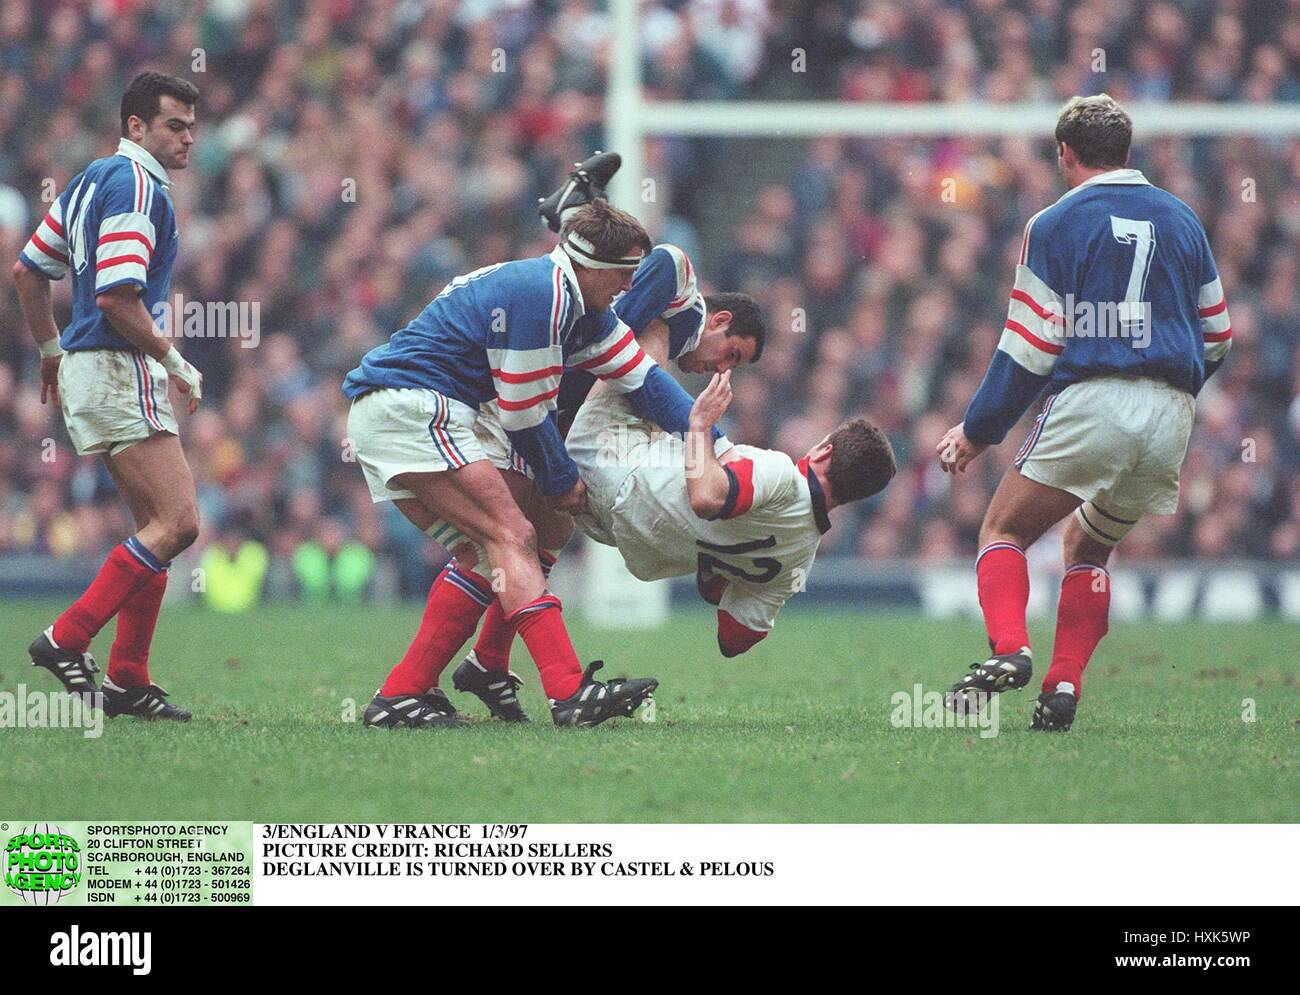 DE GLANVILLE GETS TURNED OVER BY CASTEL & PELOUS OF FRANCE 01 March 1997 - Stock Image